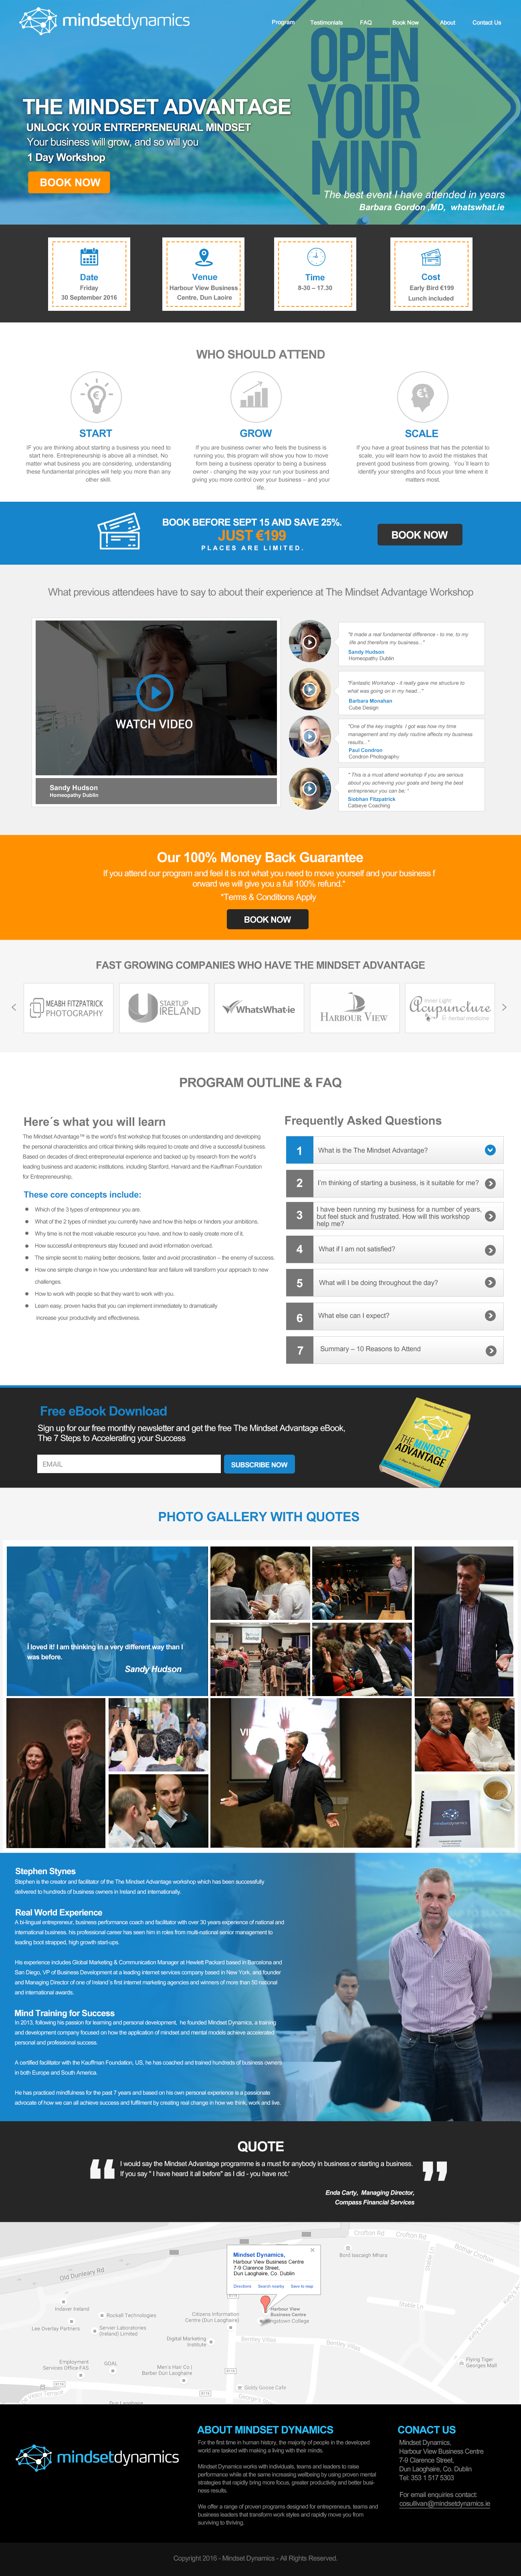 Create a landing page that will help entrepreneurs get more traction in their businesses.